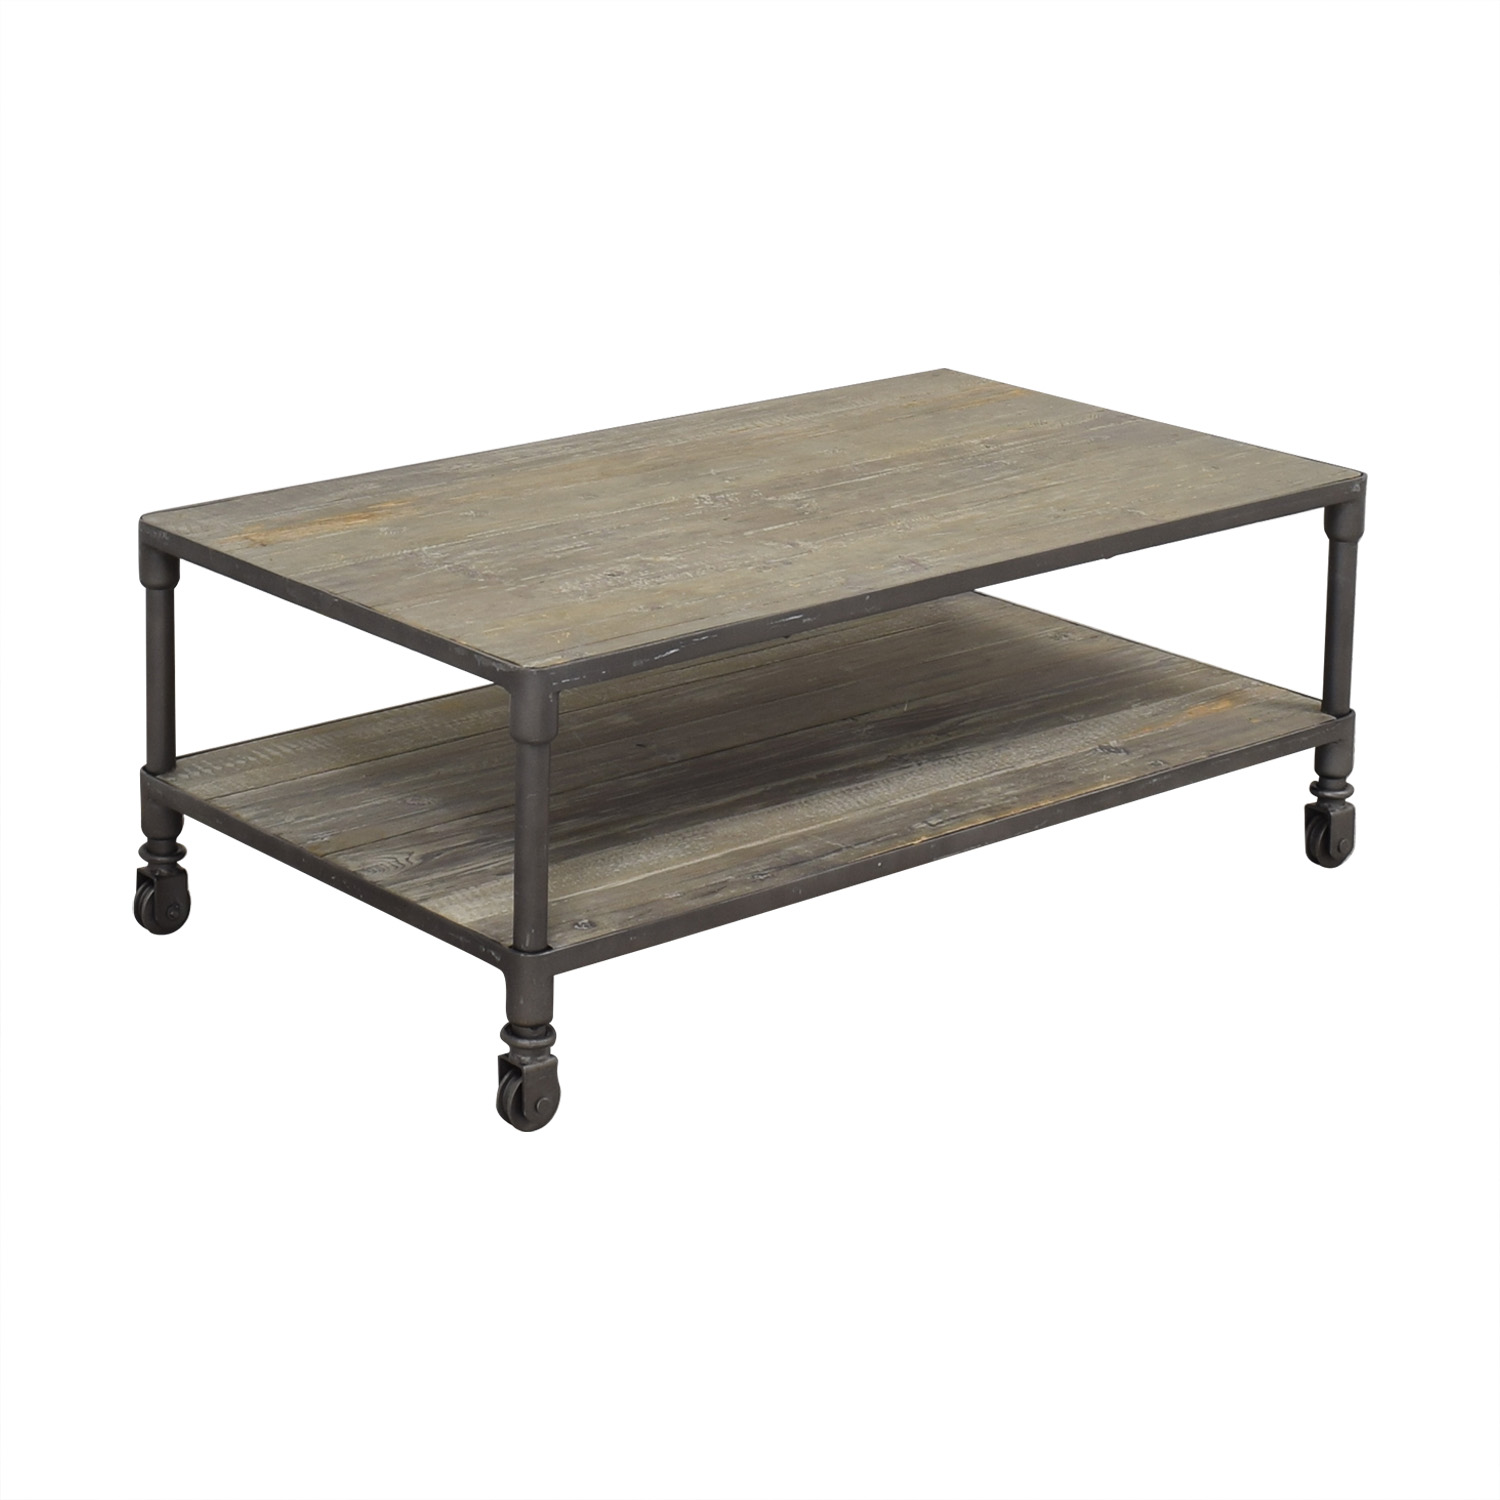 ABC Carpet & Home ABC Carpet & Home Industrial Rolling Two Tier Coffee Table ma